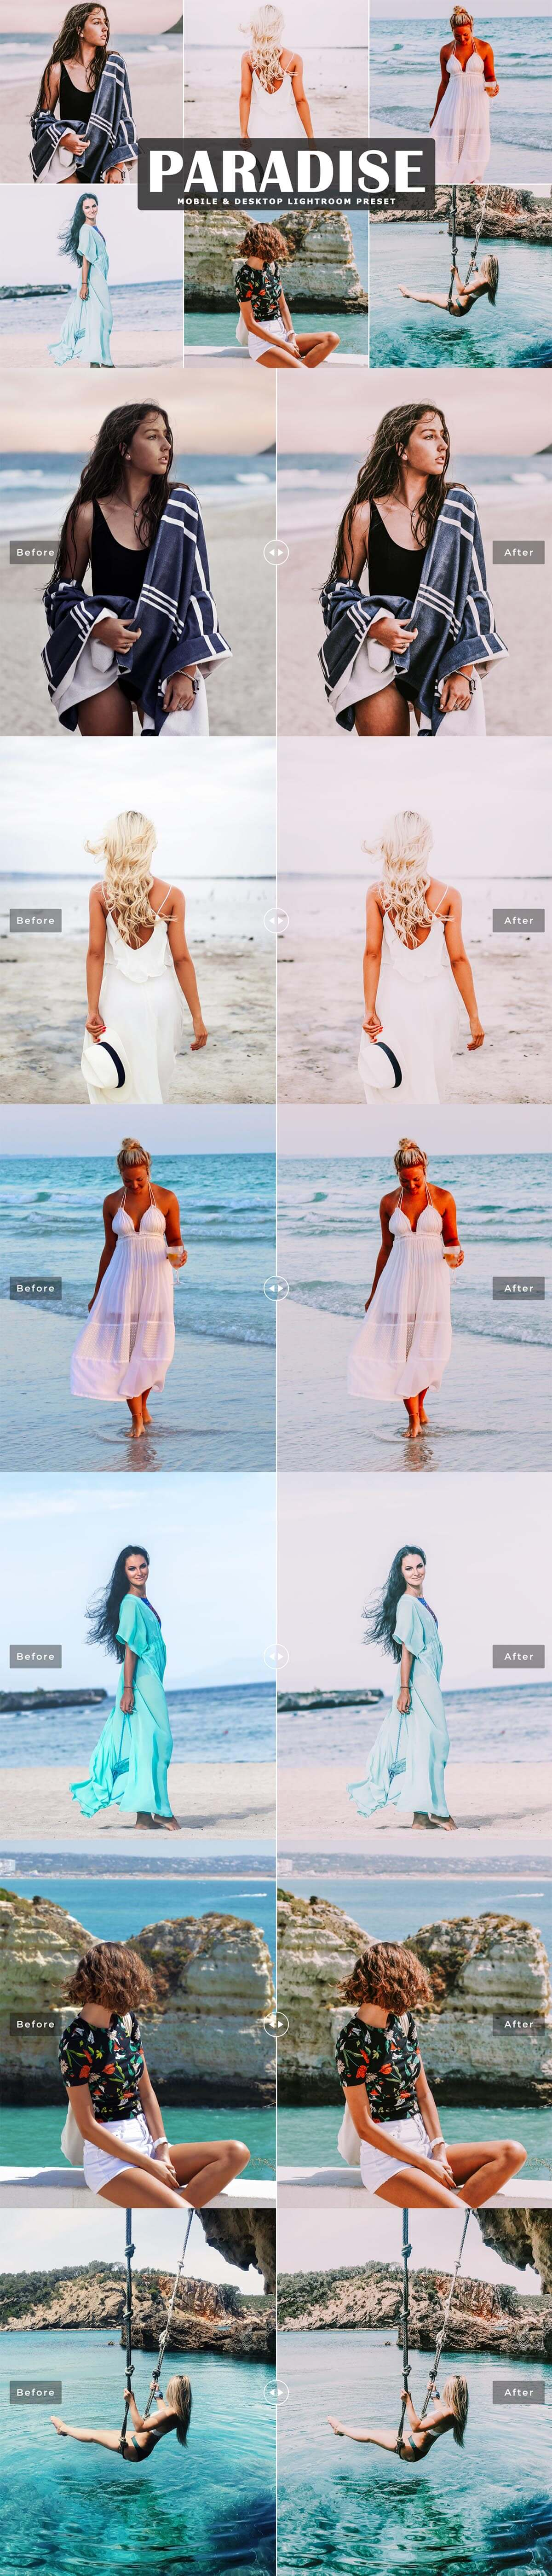 Free Paradise Lightroom Preset